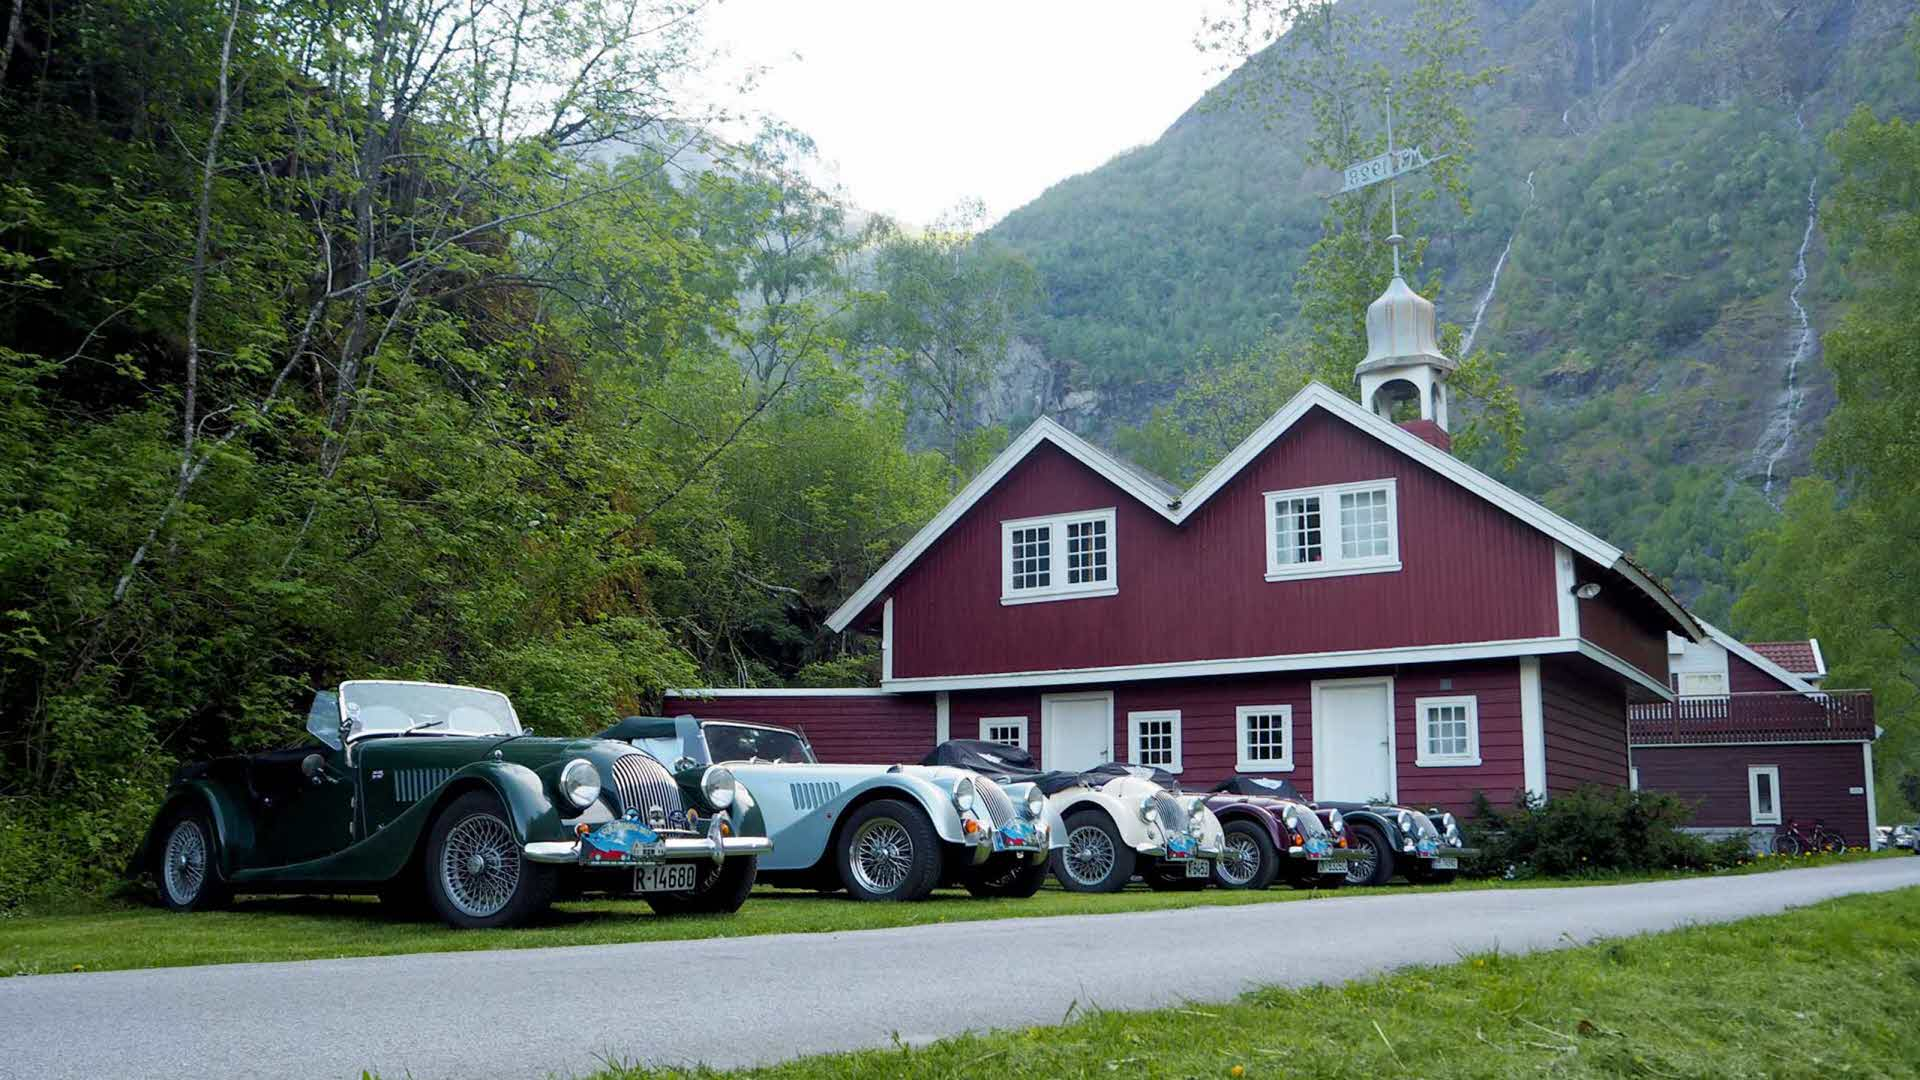 Five vintage sports cars parked outside the Storehouse in Flåm